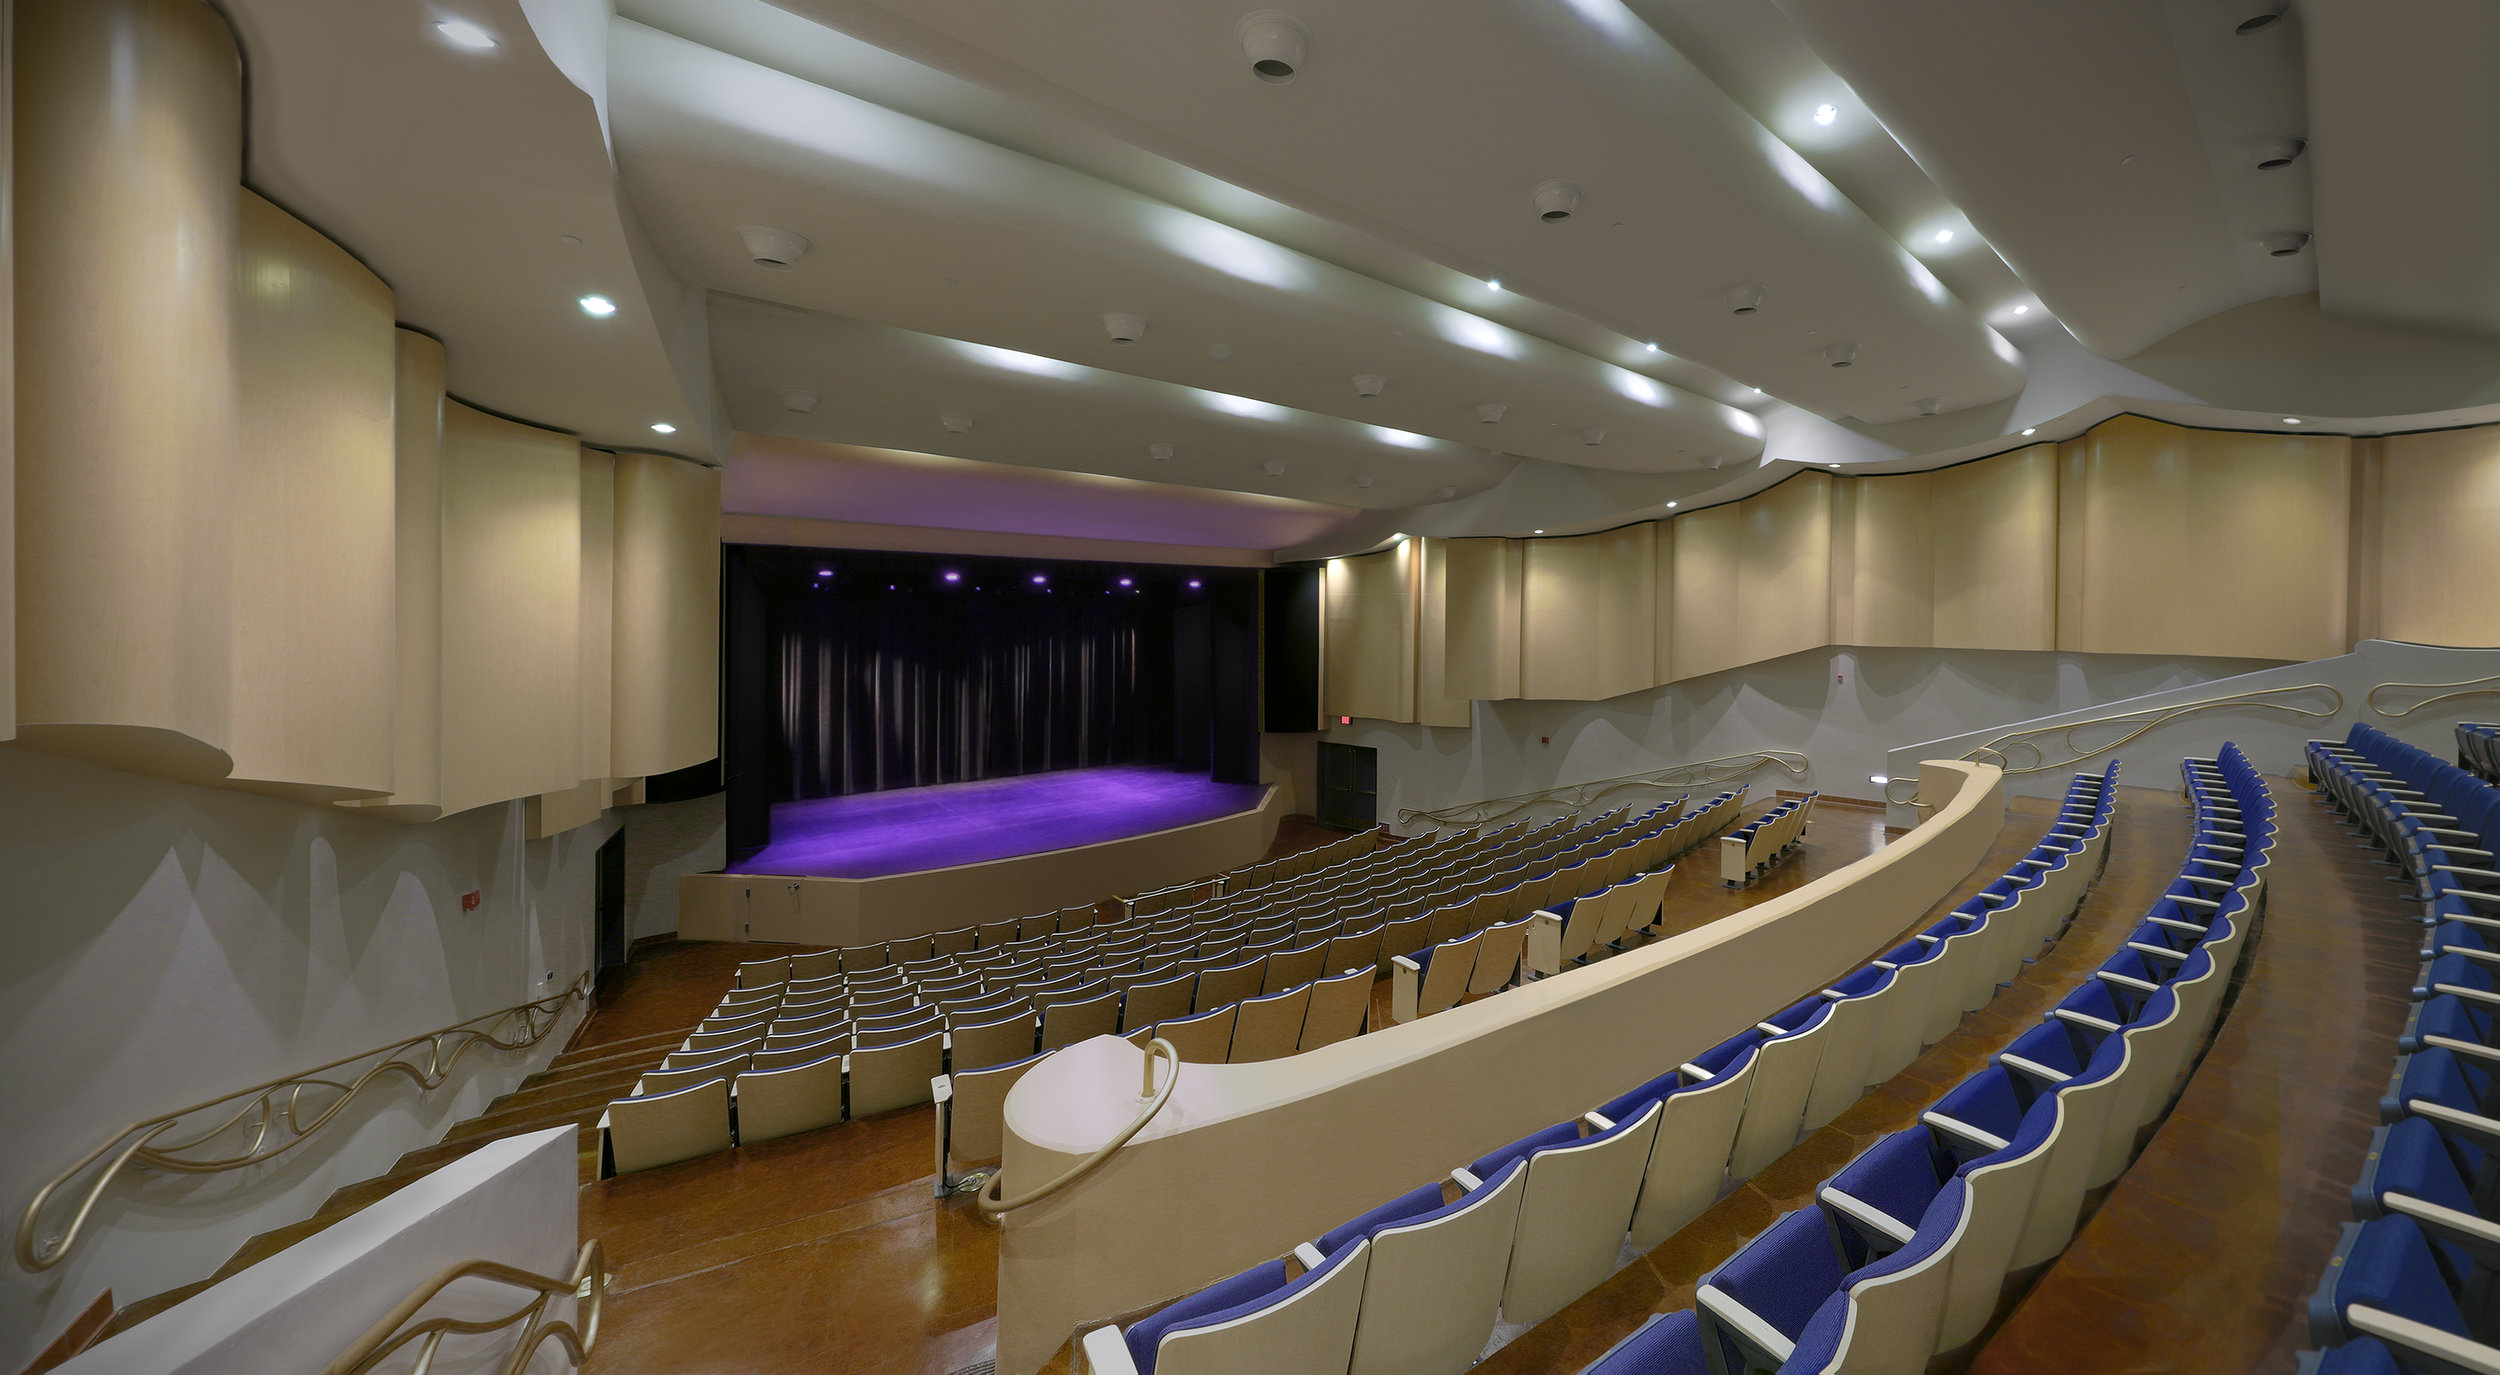 San Manuel Performing Arts Center, Aquinas High School, San Bernardino